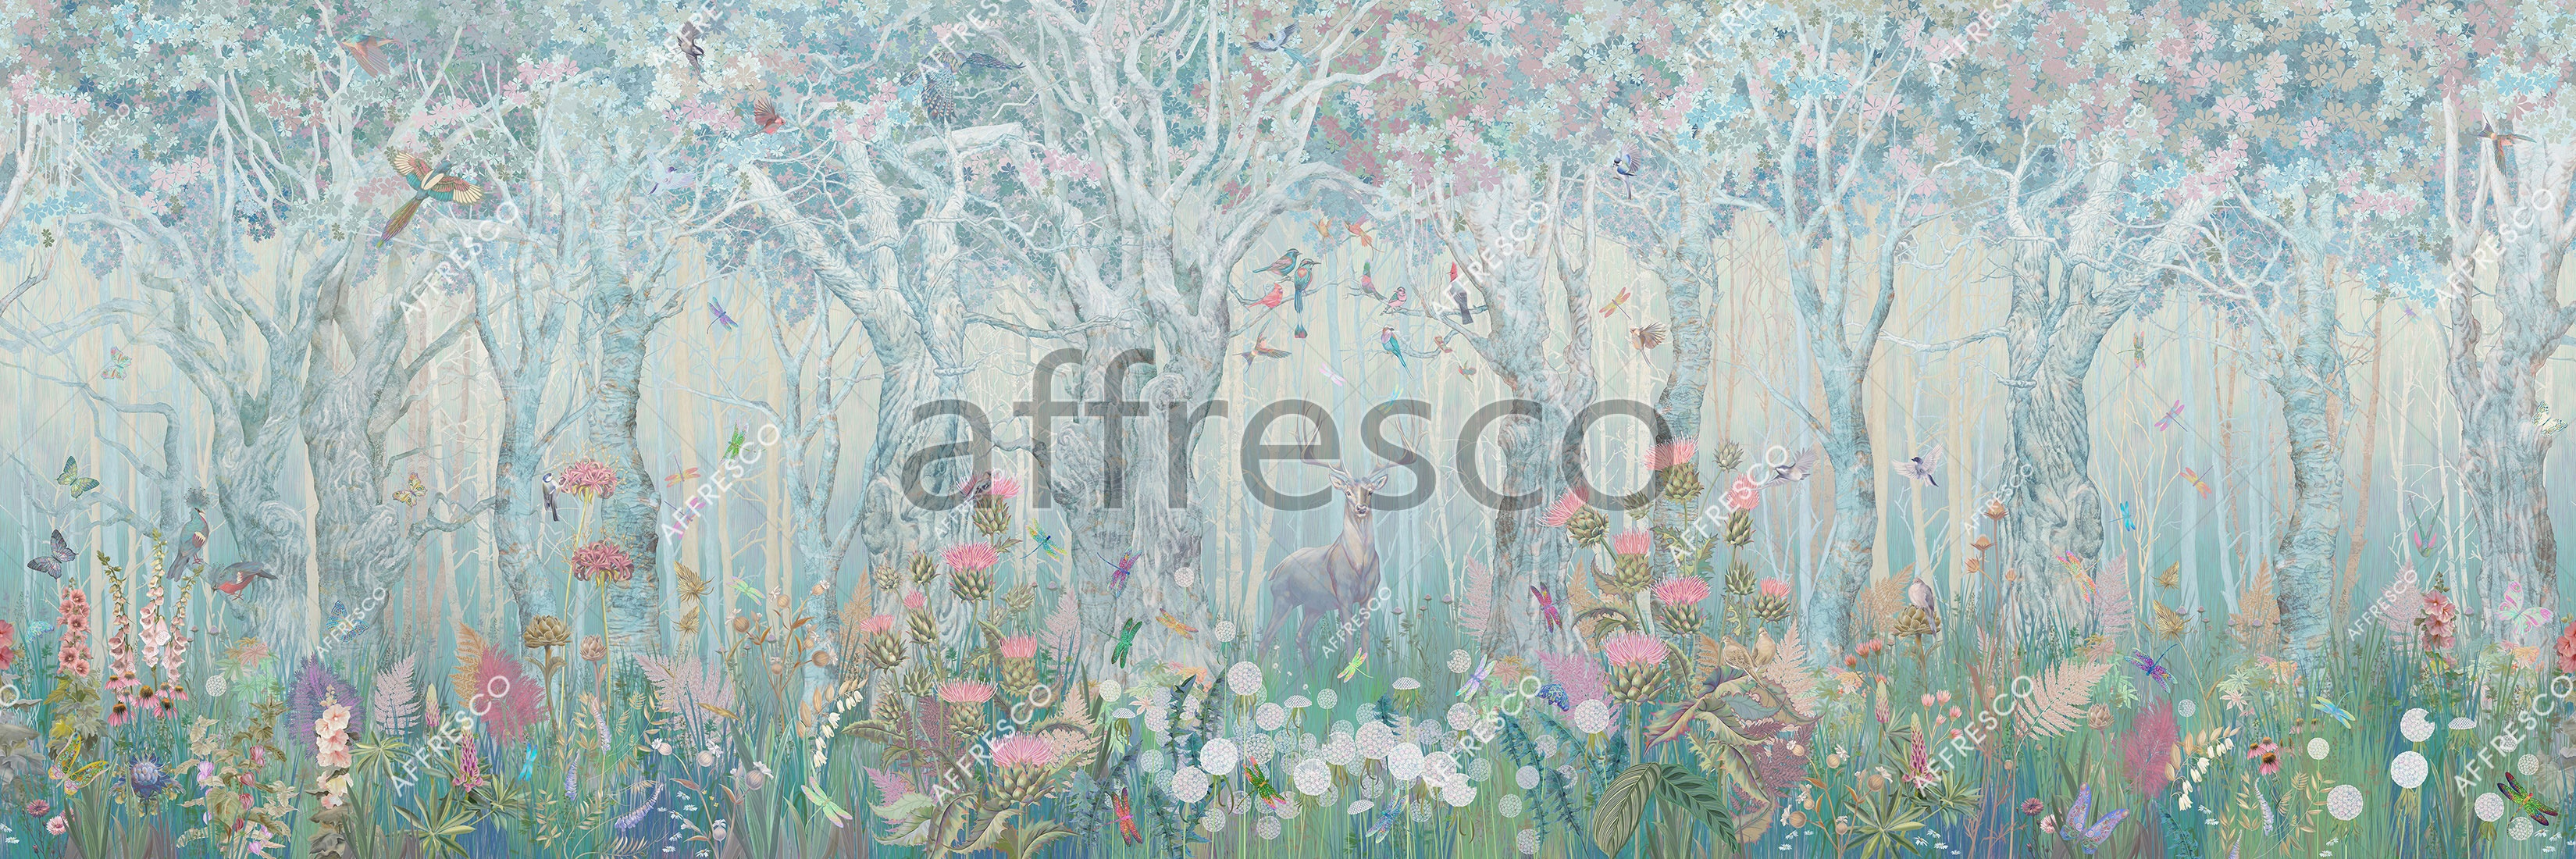 ID136009 | Forest |  | Affresco Factory